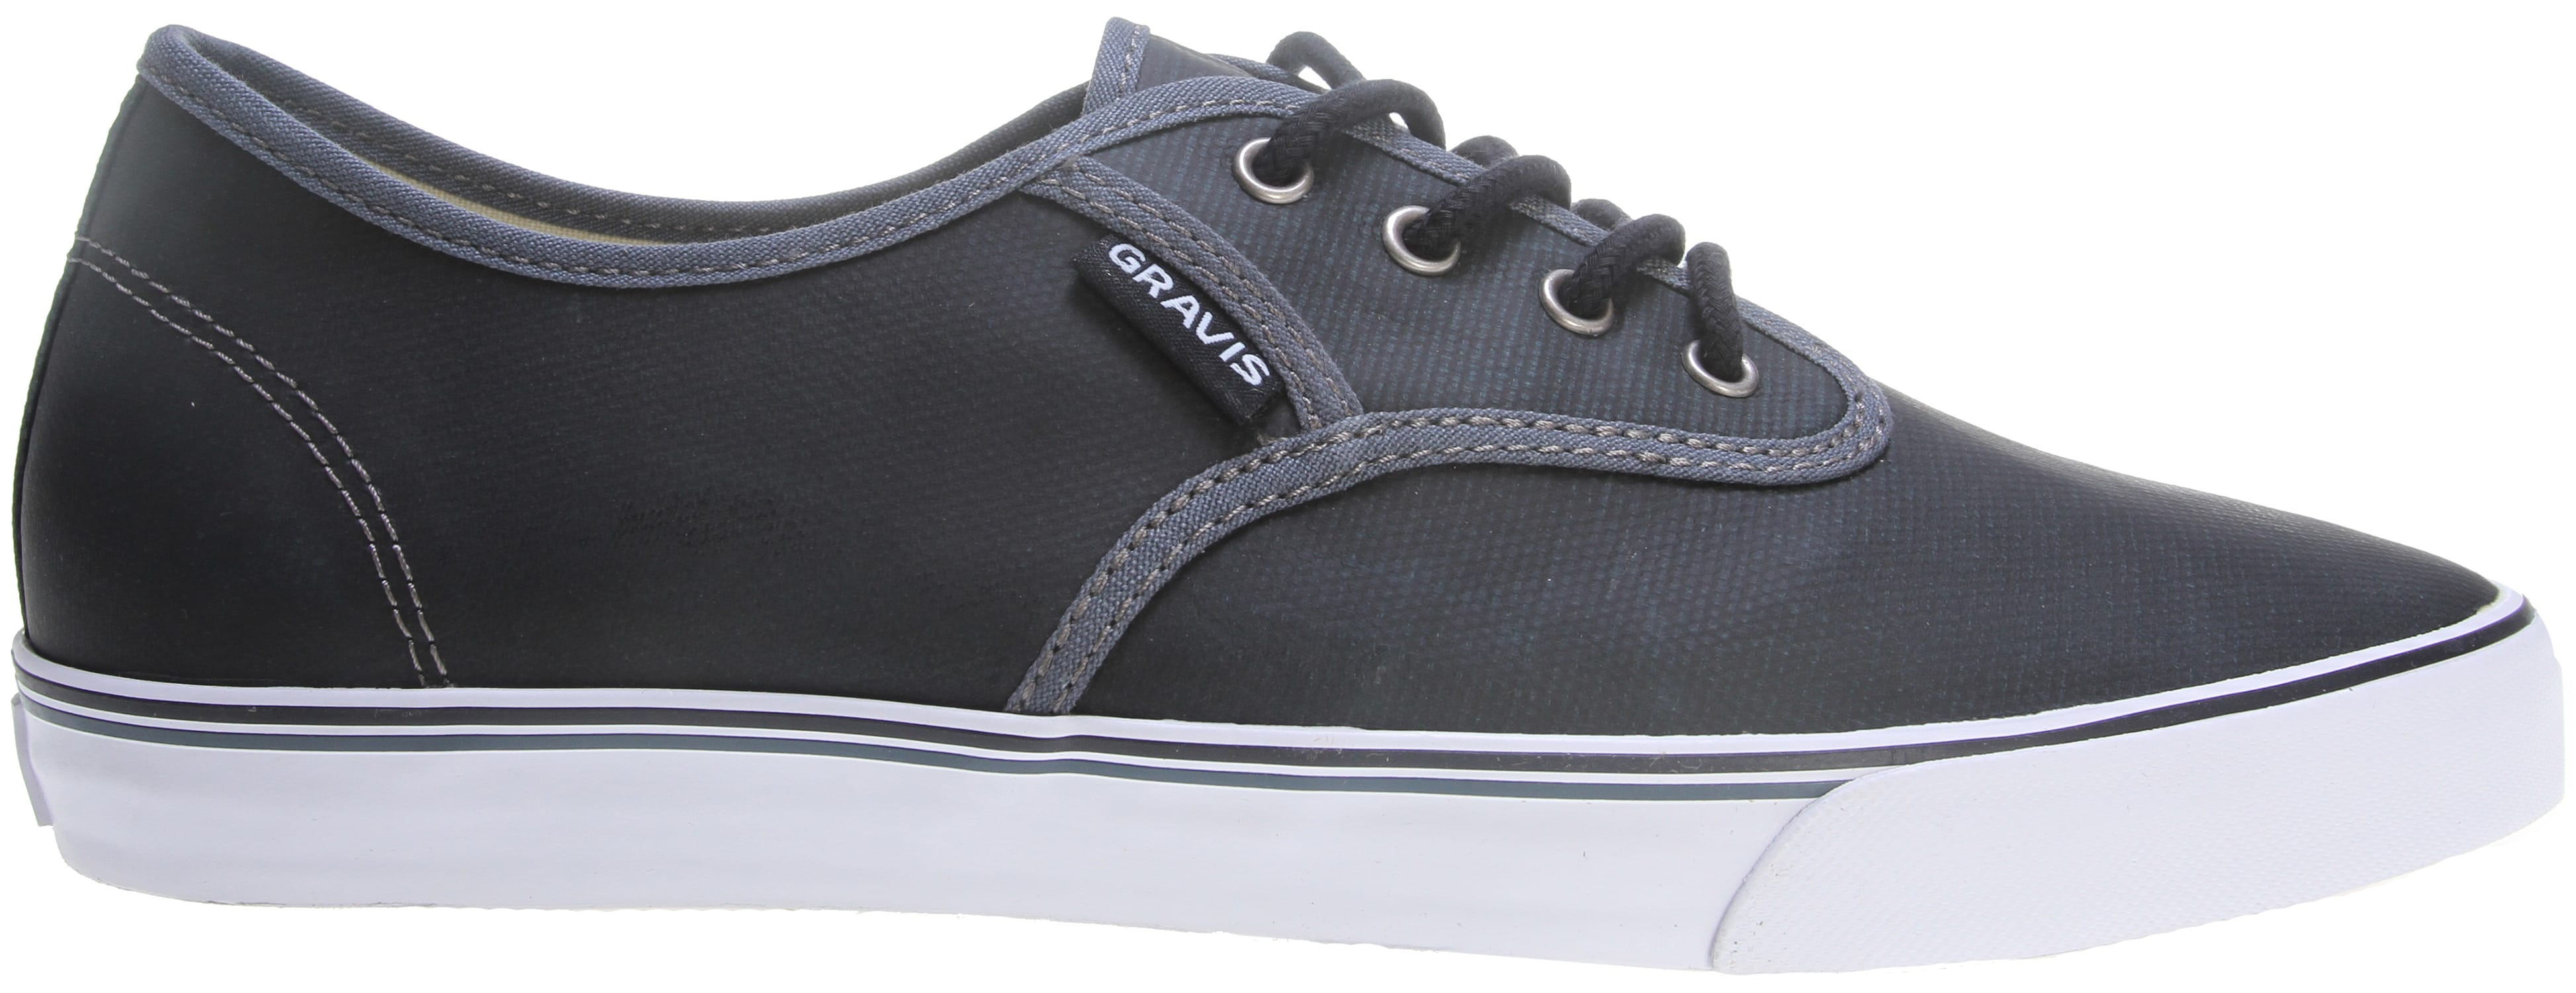 recommendations for weatherpruf shoe waxes This report will give a forecast on weatherpruf show waxes ltd's expected  the market for wax-based shoe polishes is  challenges and recommendations.